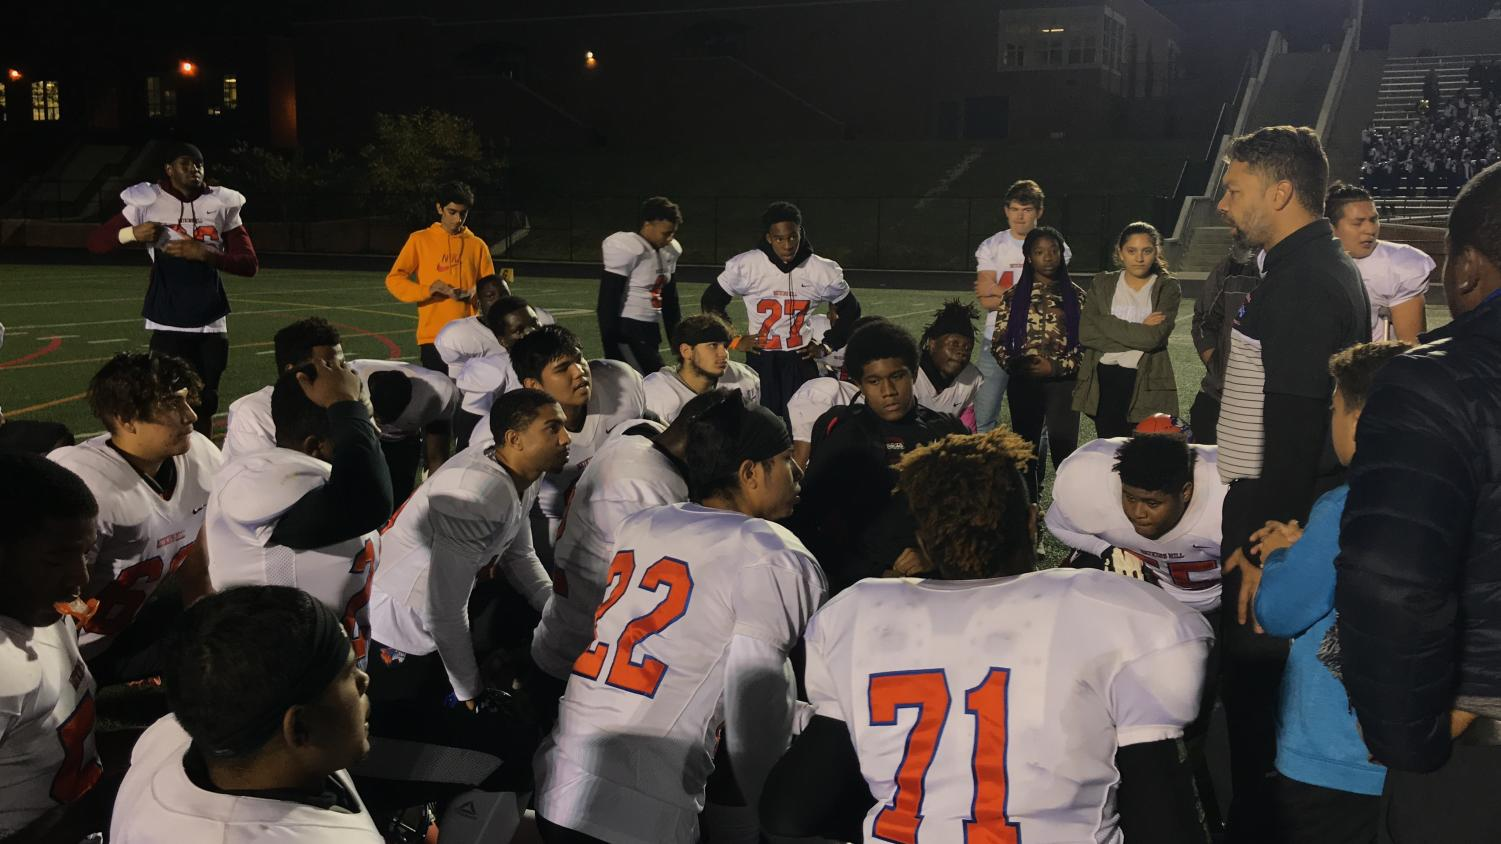 The team huddles as coach Michael Brown speaks post-win.